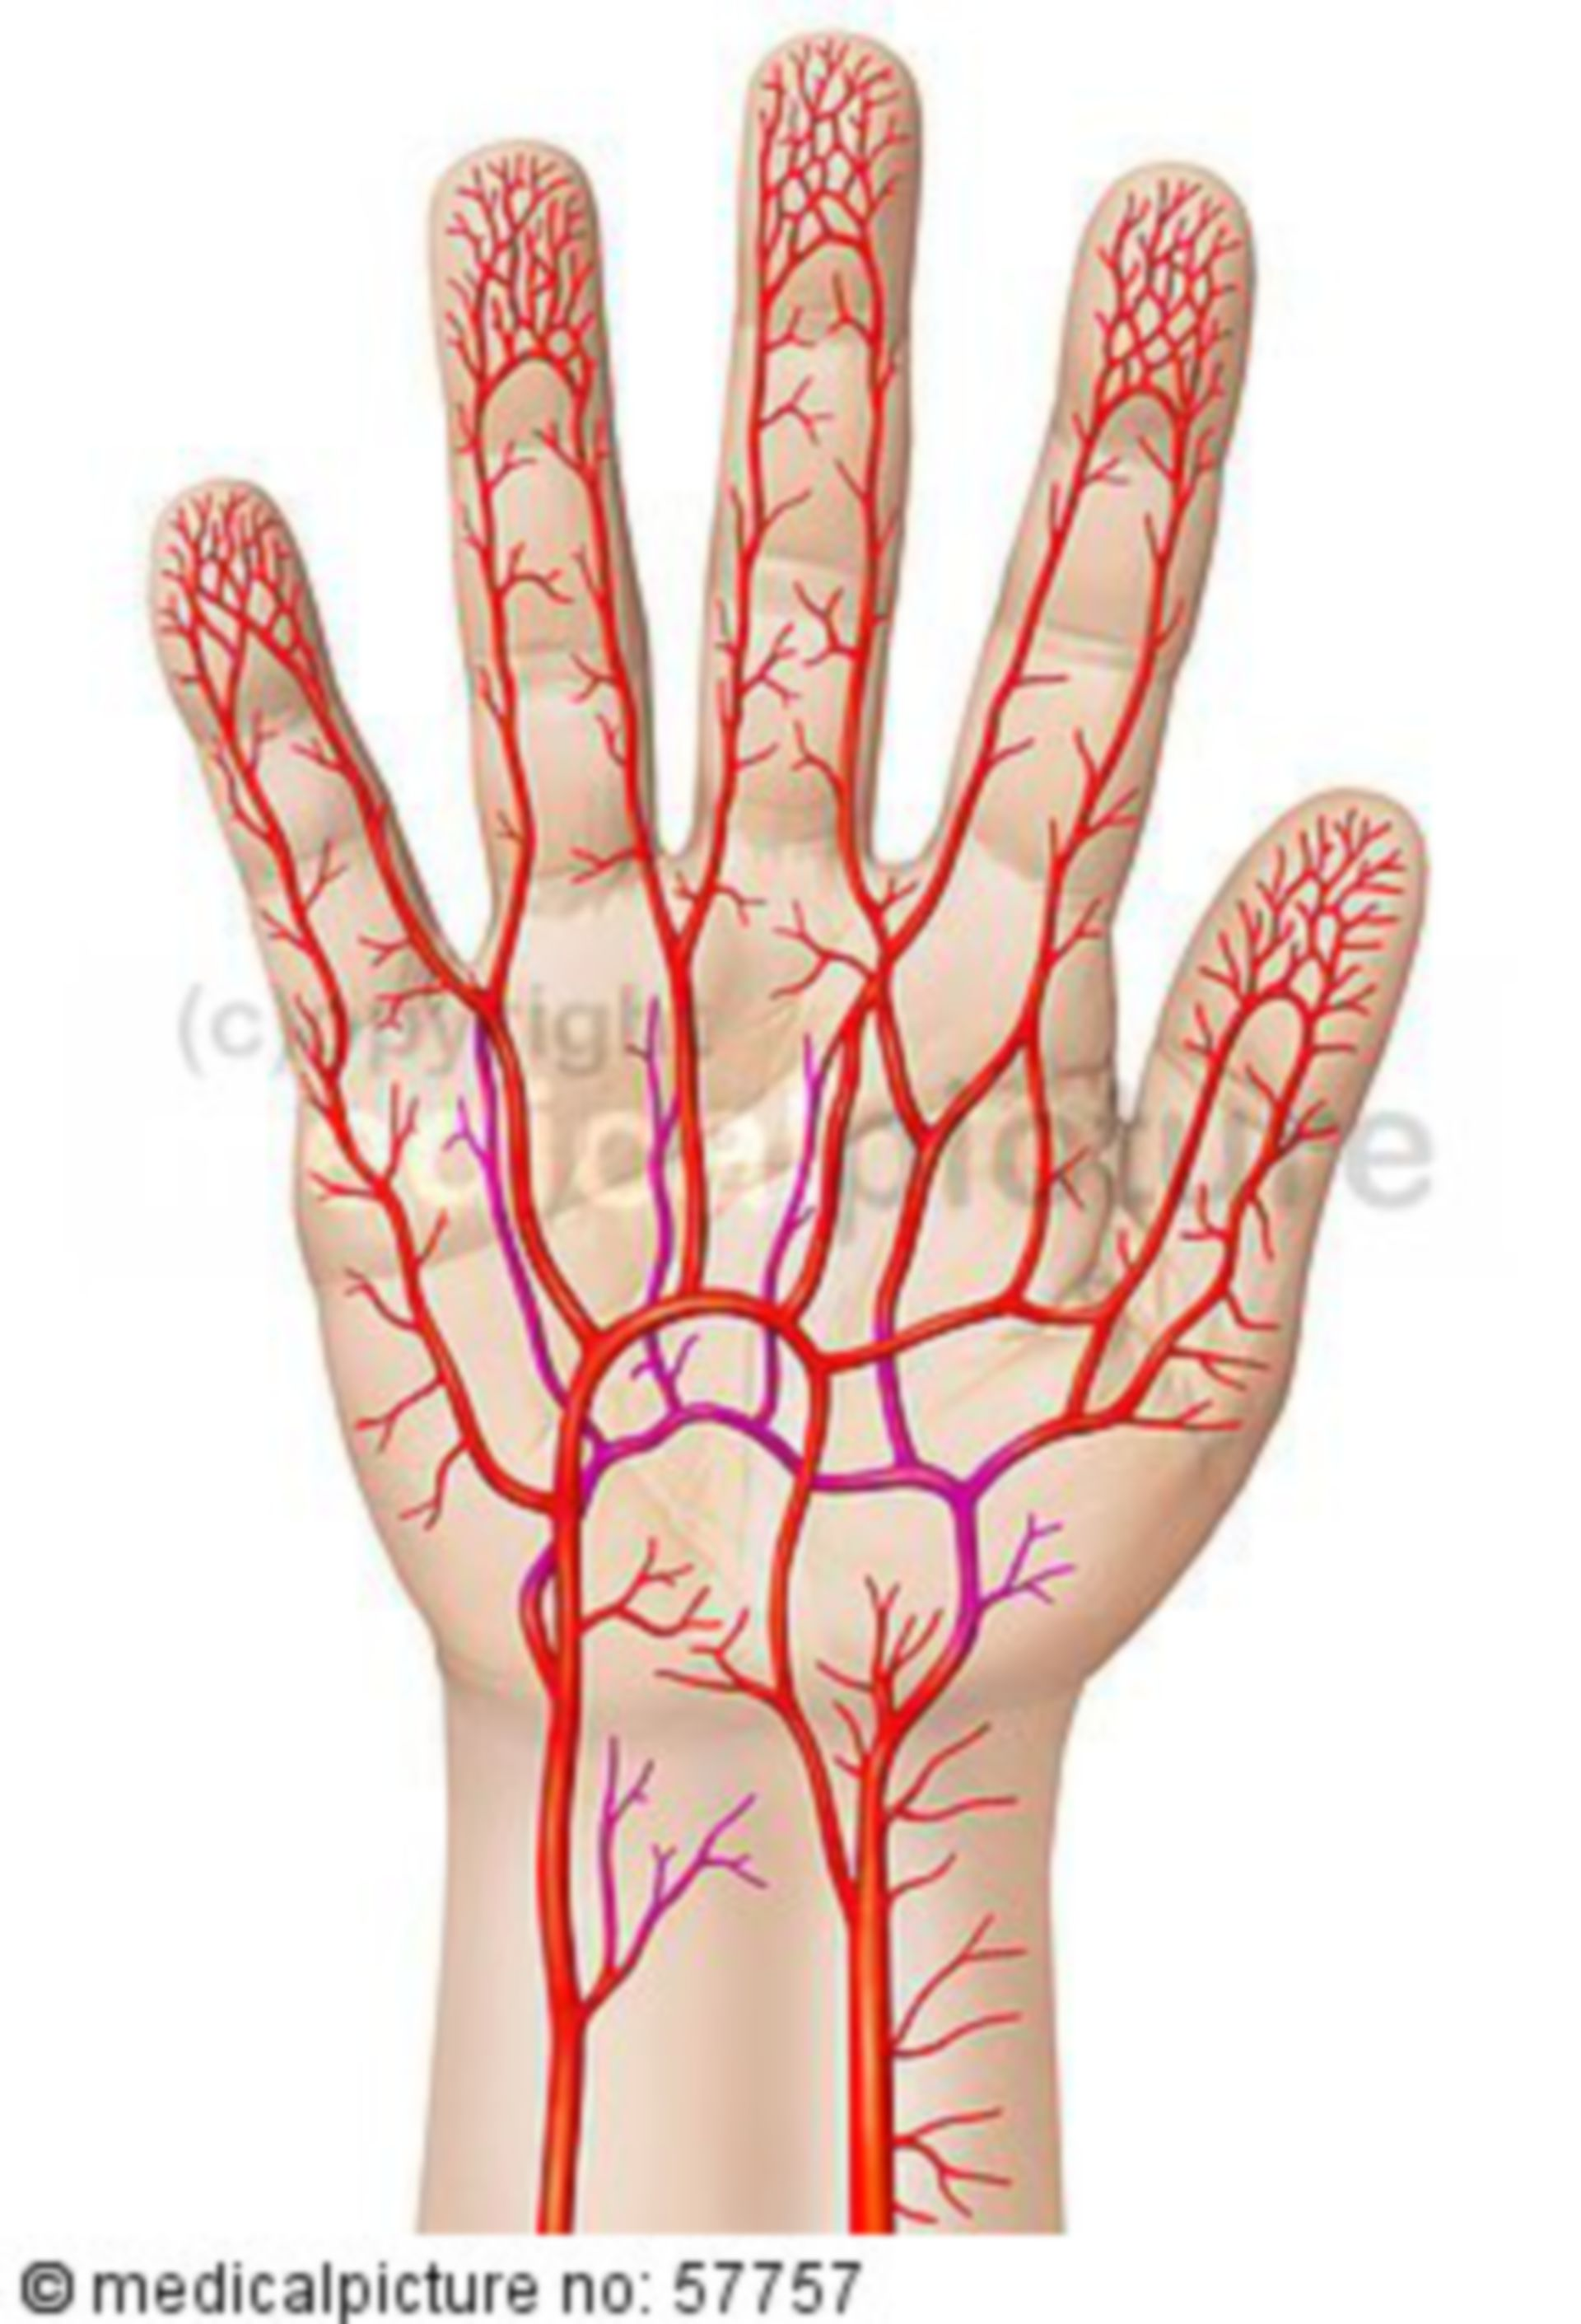 Anatomic illustrations - arterial supply of the hand